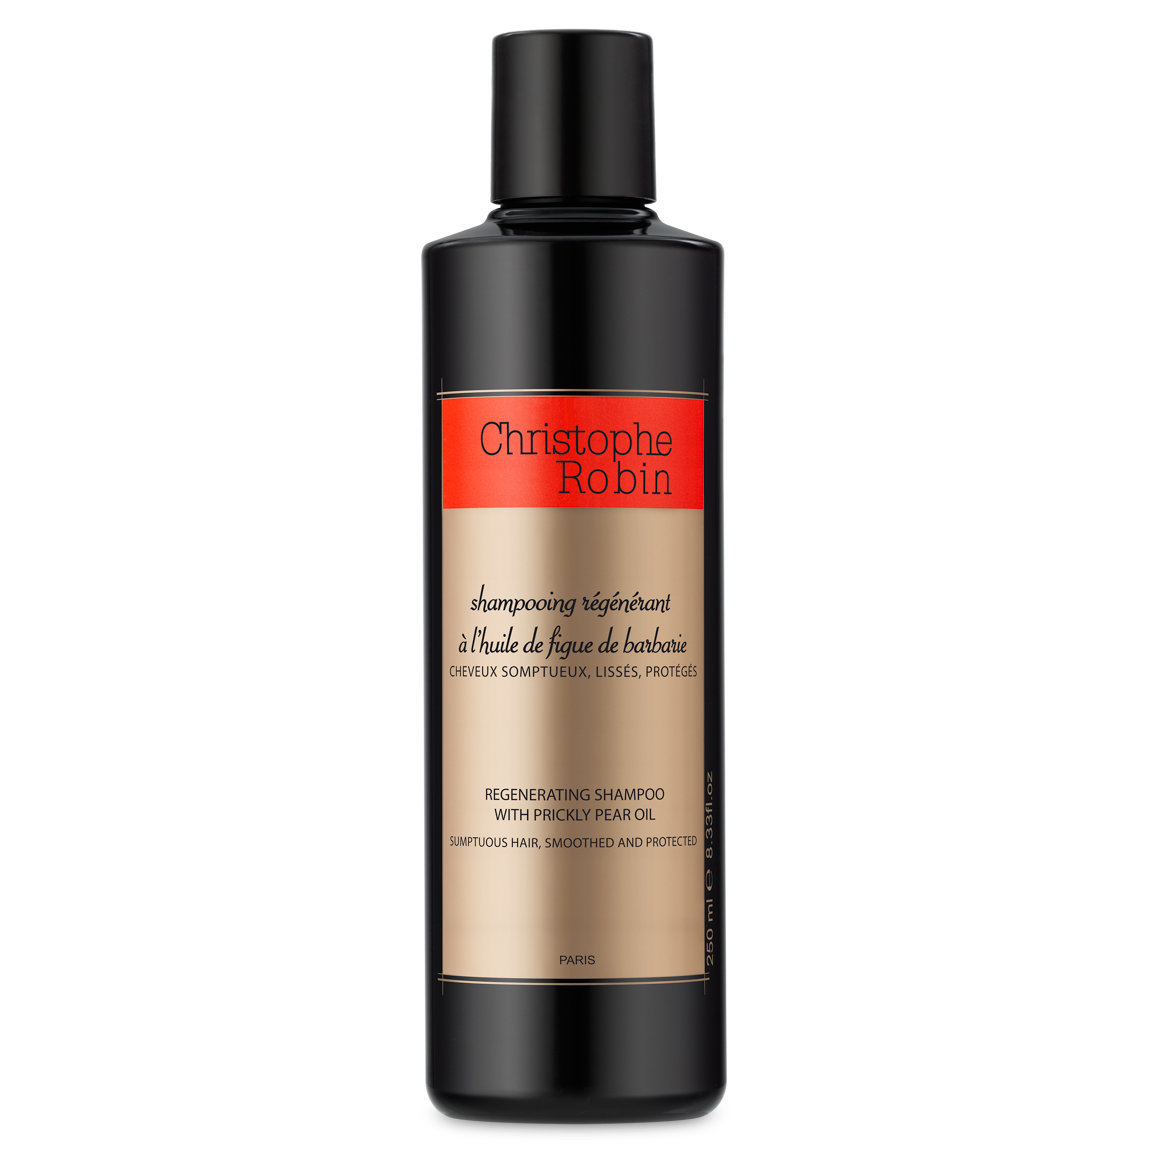 Christophe Robin Regenerating Shampoo with Prickly Pear Oil 250 ml alternative view 1 - product swatch.